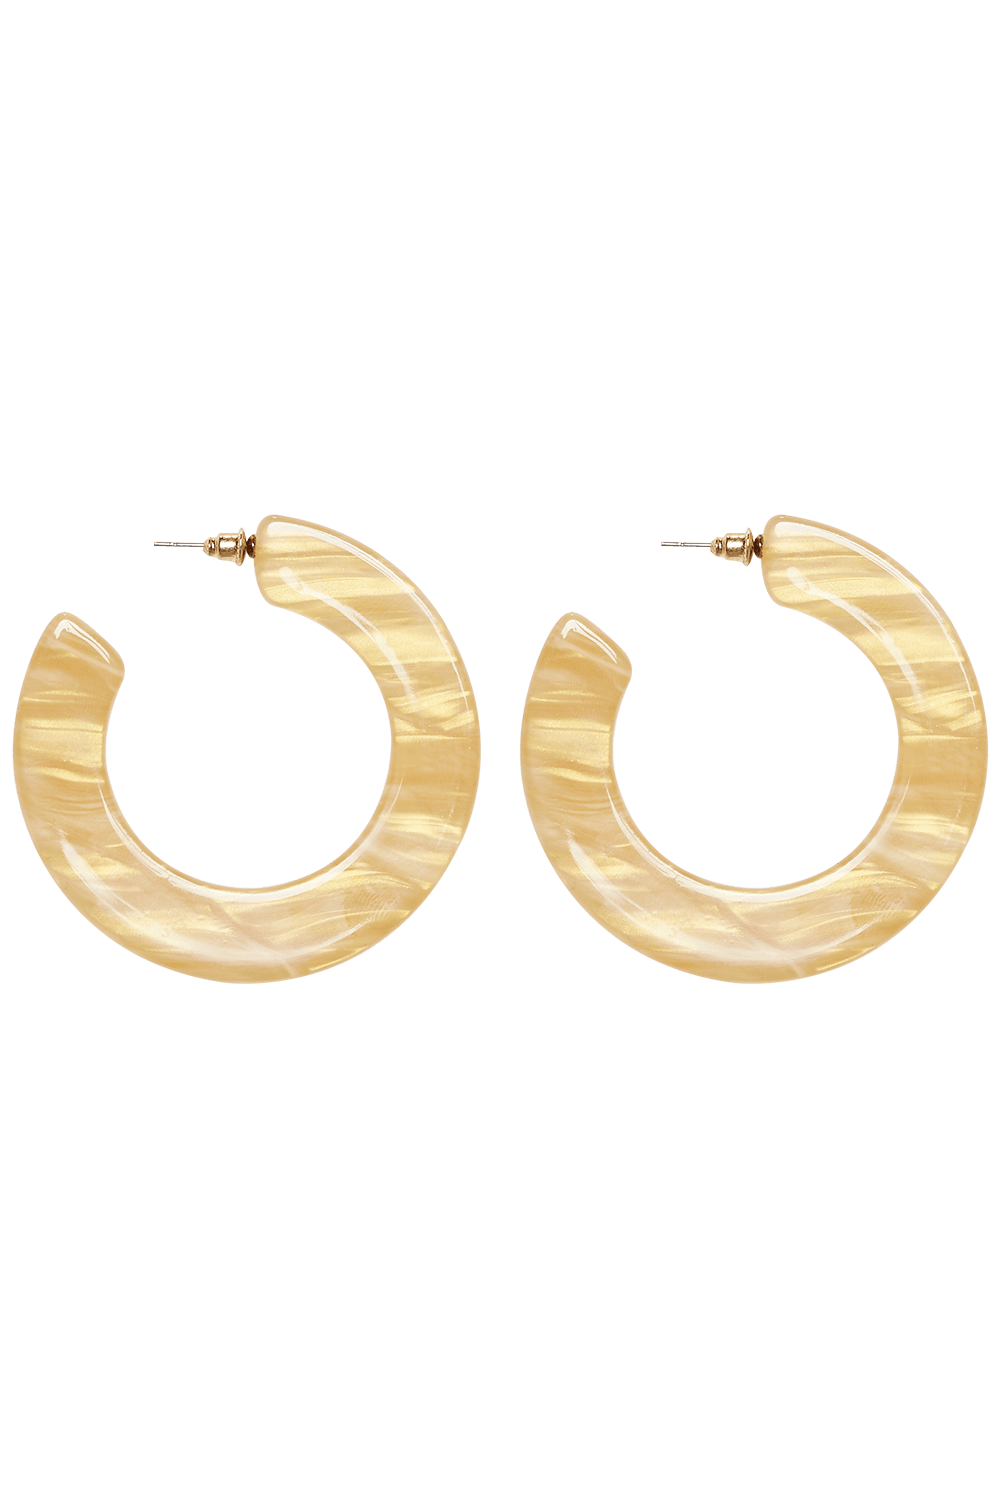 FLAT RESIN HOOPS in colour BRIGHT WHITE